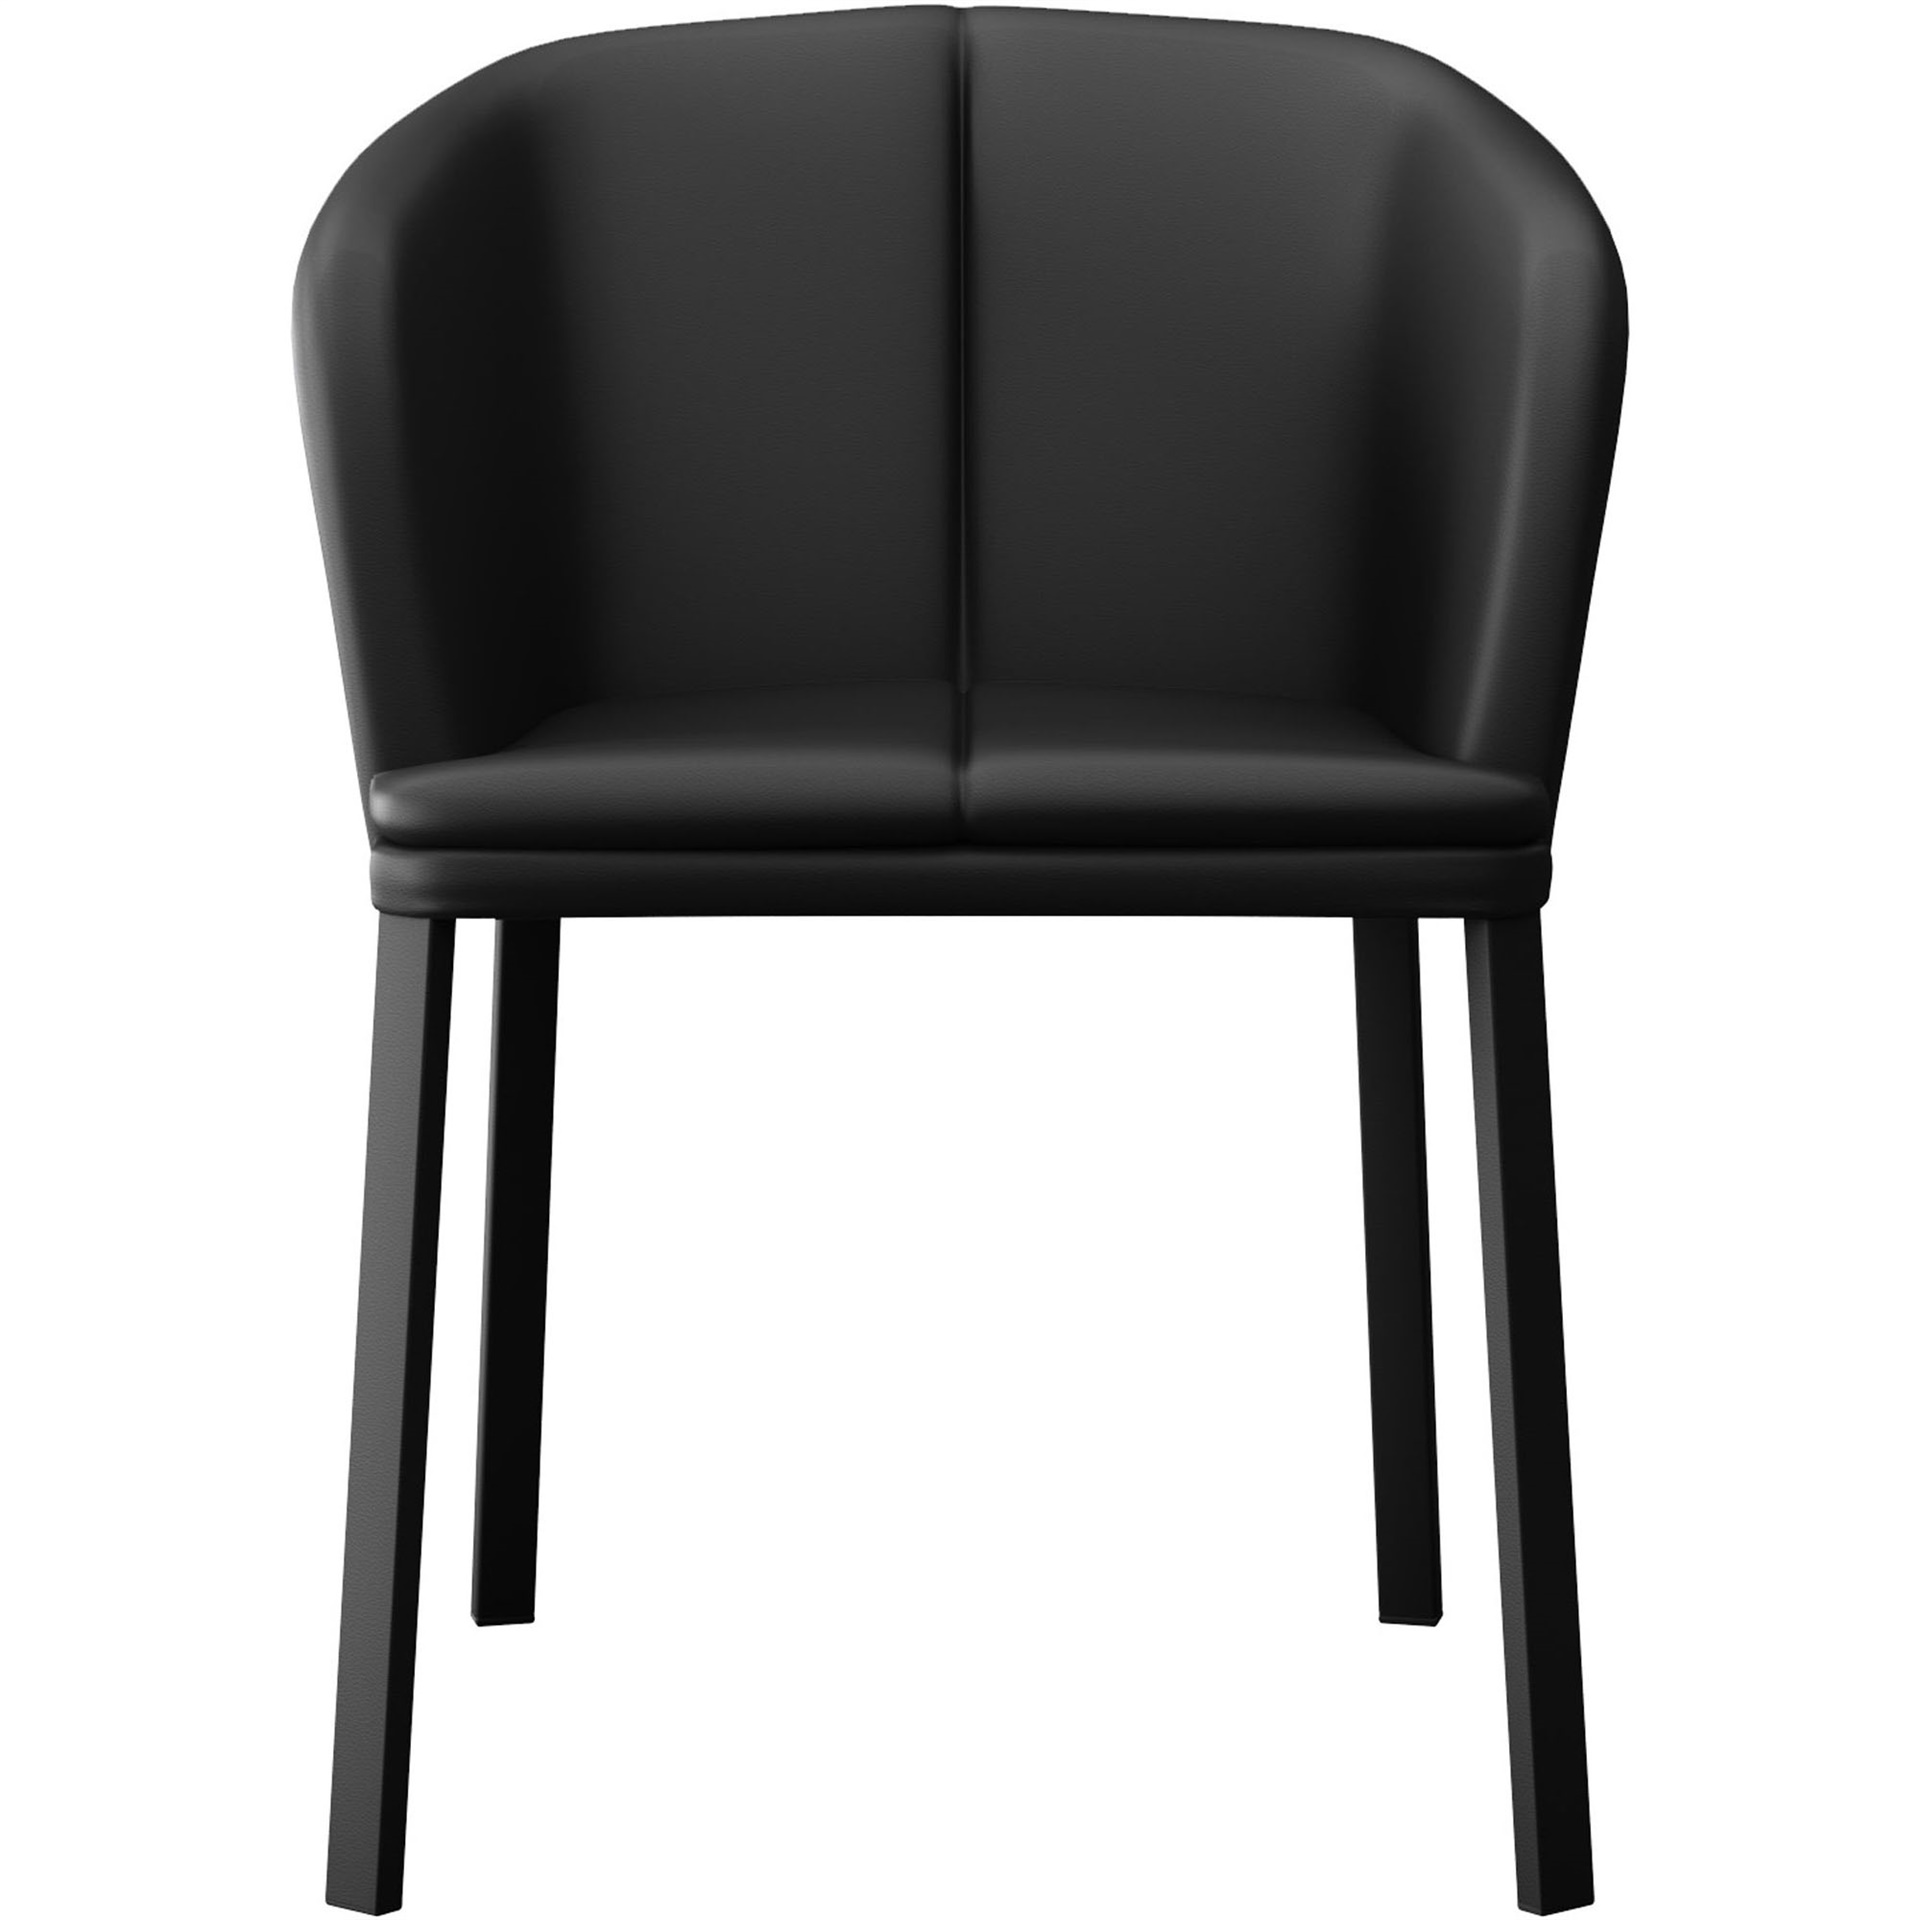 Terrific Como Dining Chair Andrewgaddart Wooden Chair Designs For Living Room Andrewgaddartcom